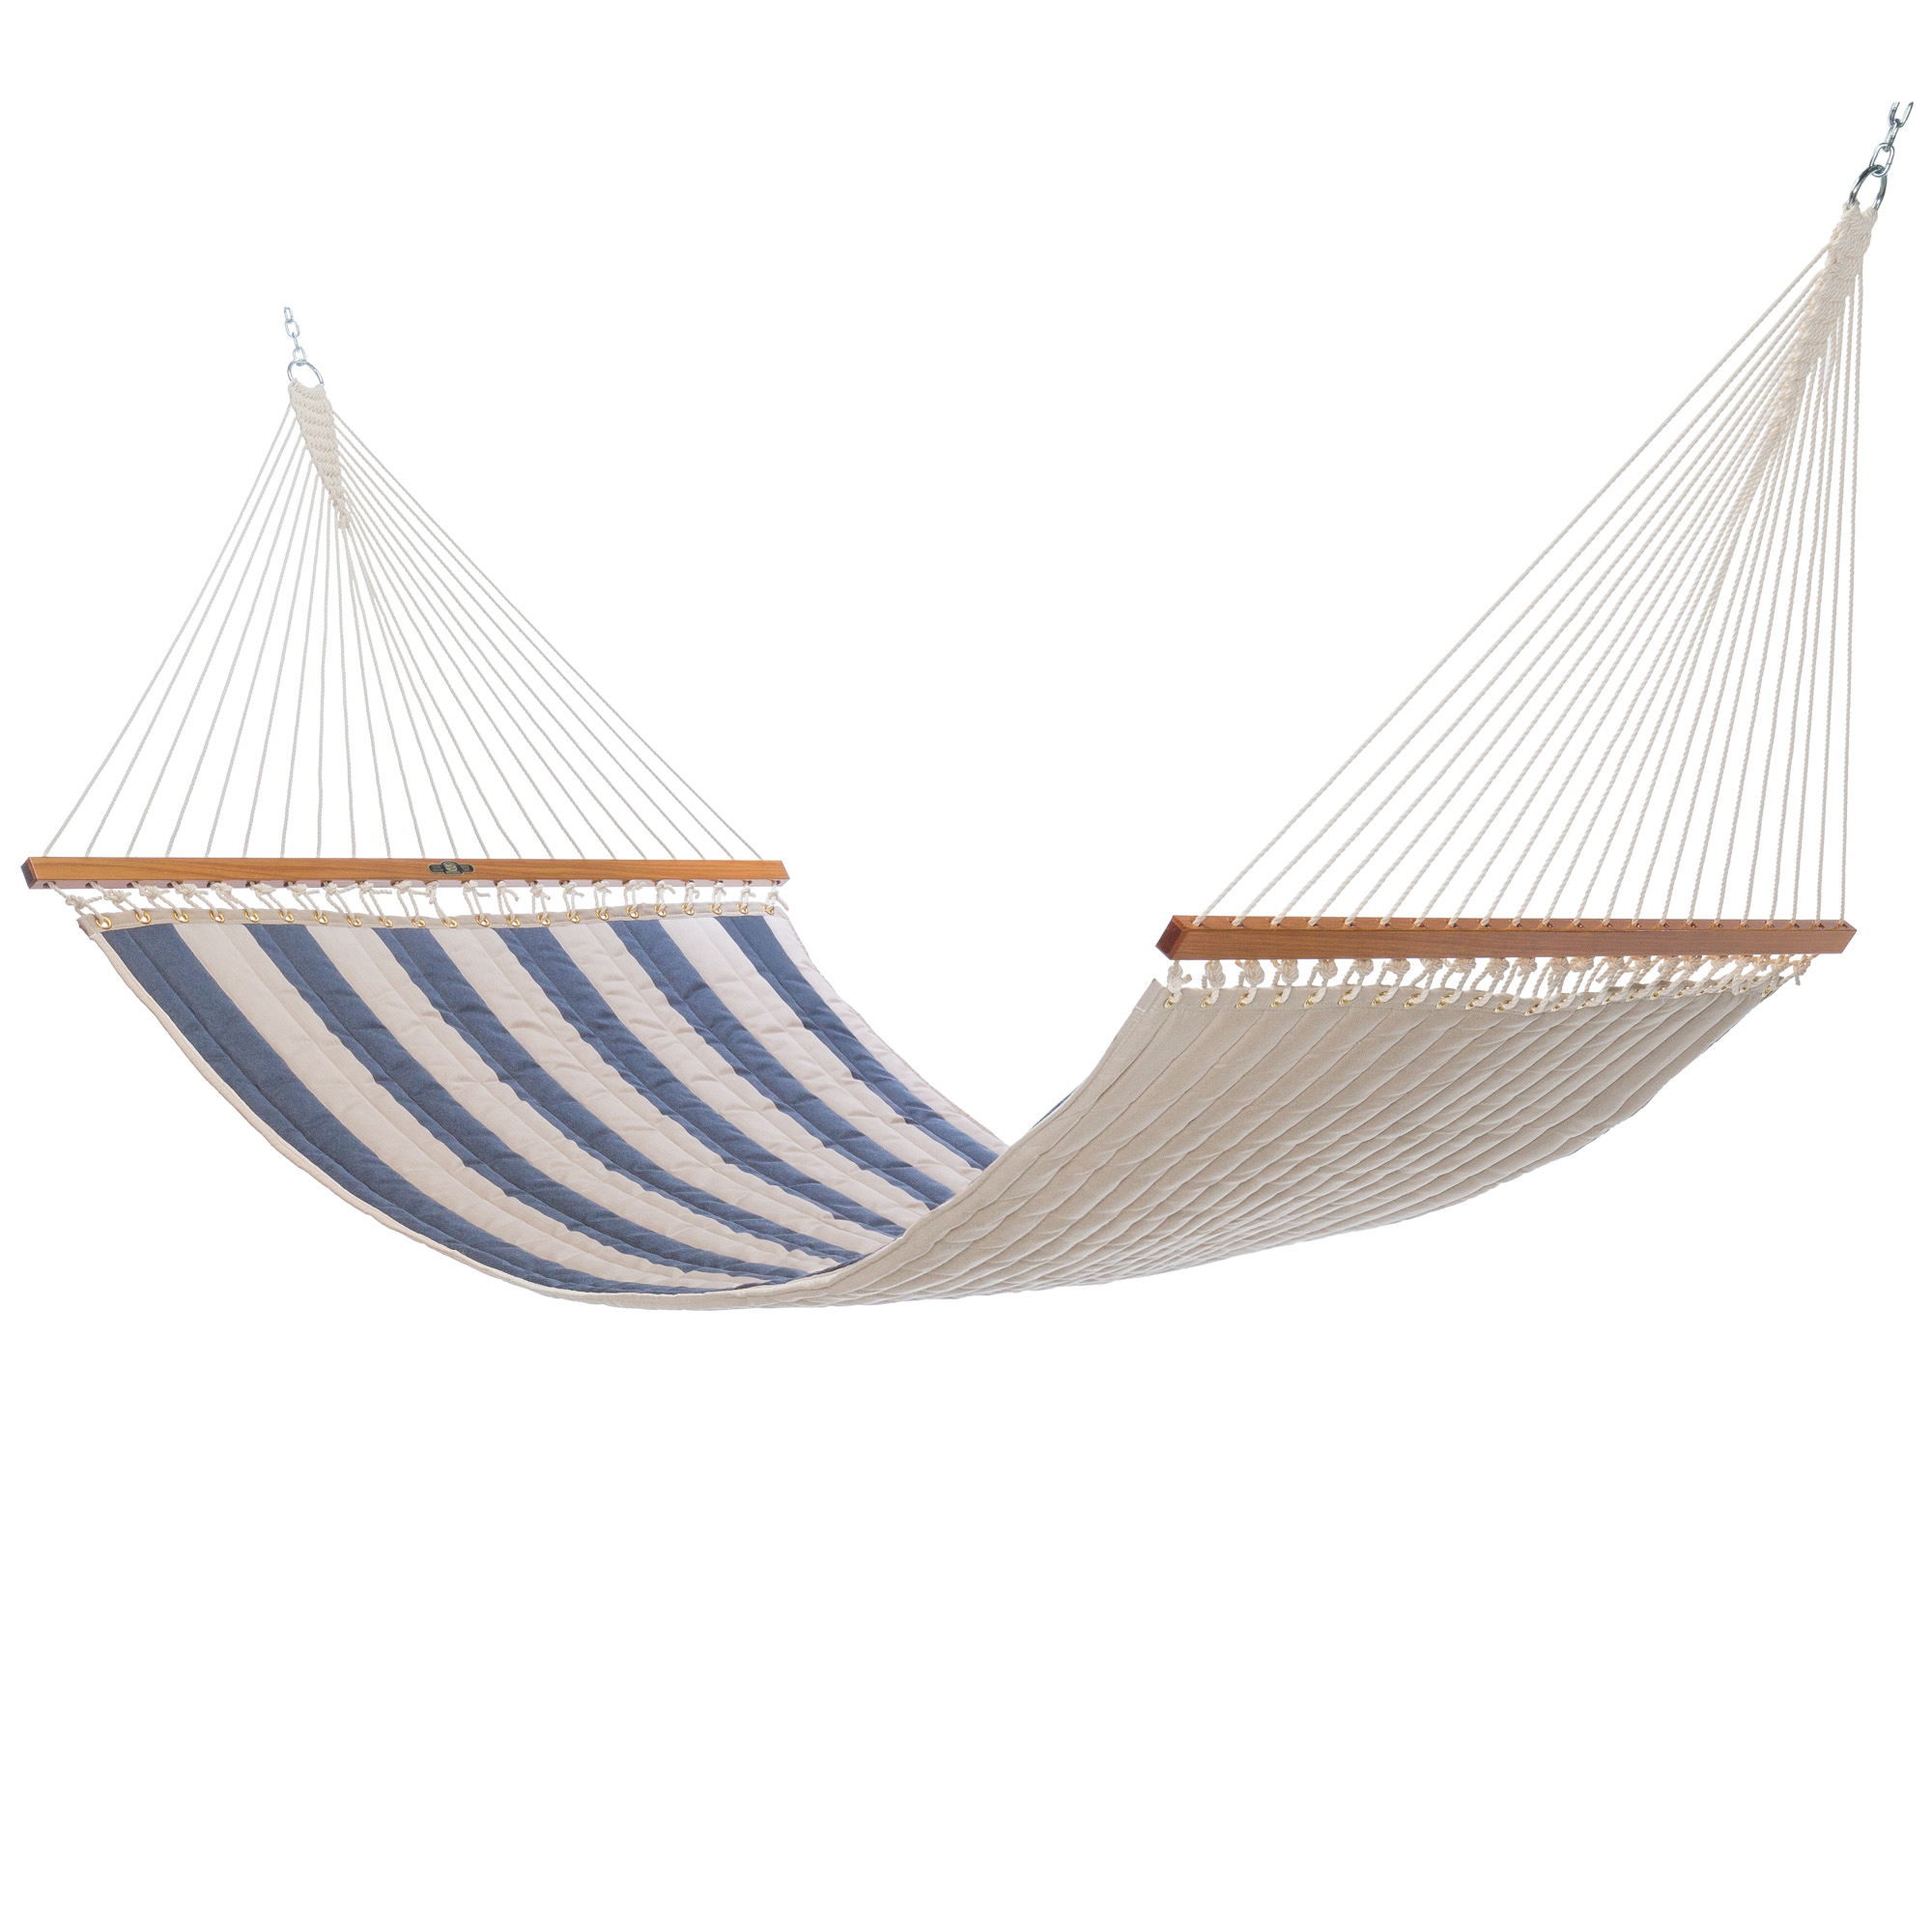 hammocks hanging bar san colada hammock and diego double kiwi weatherpoof colombian things spreader chairs swings